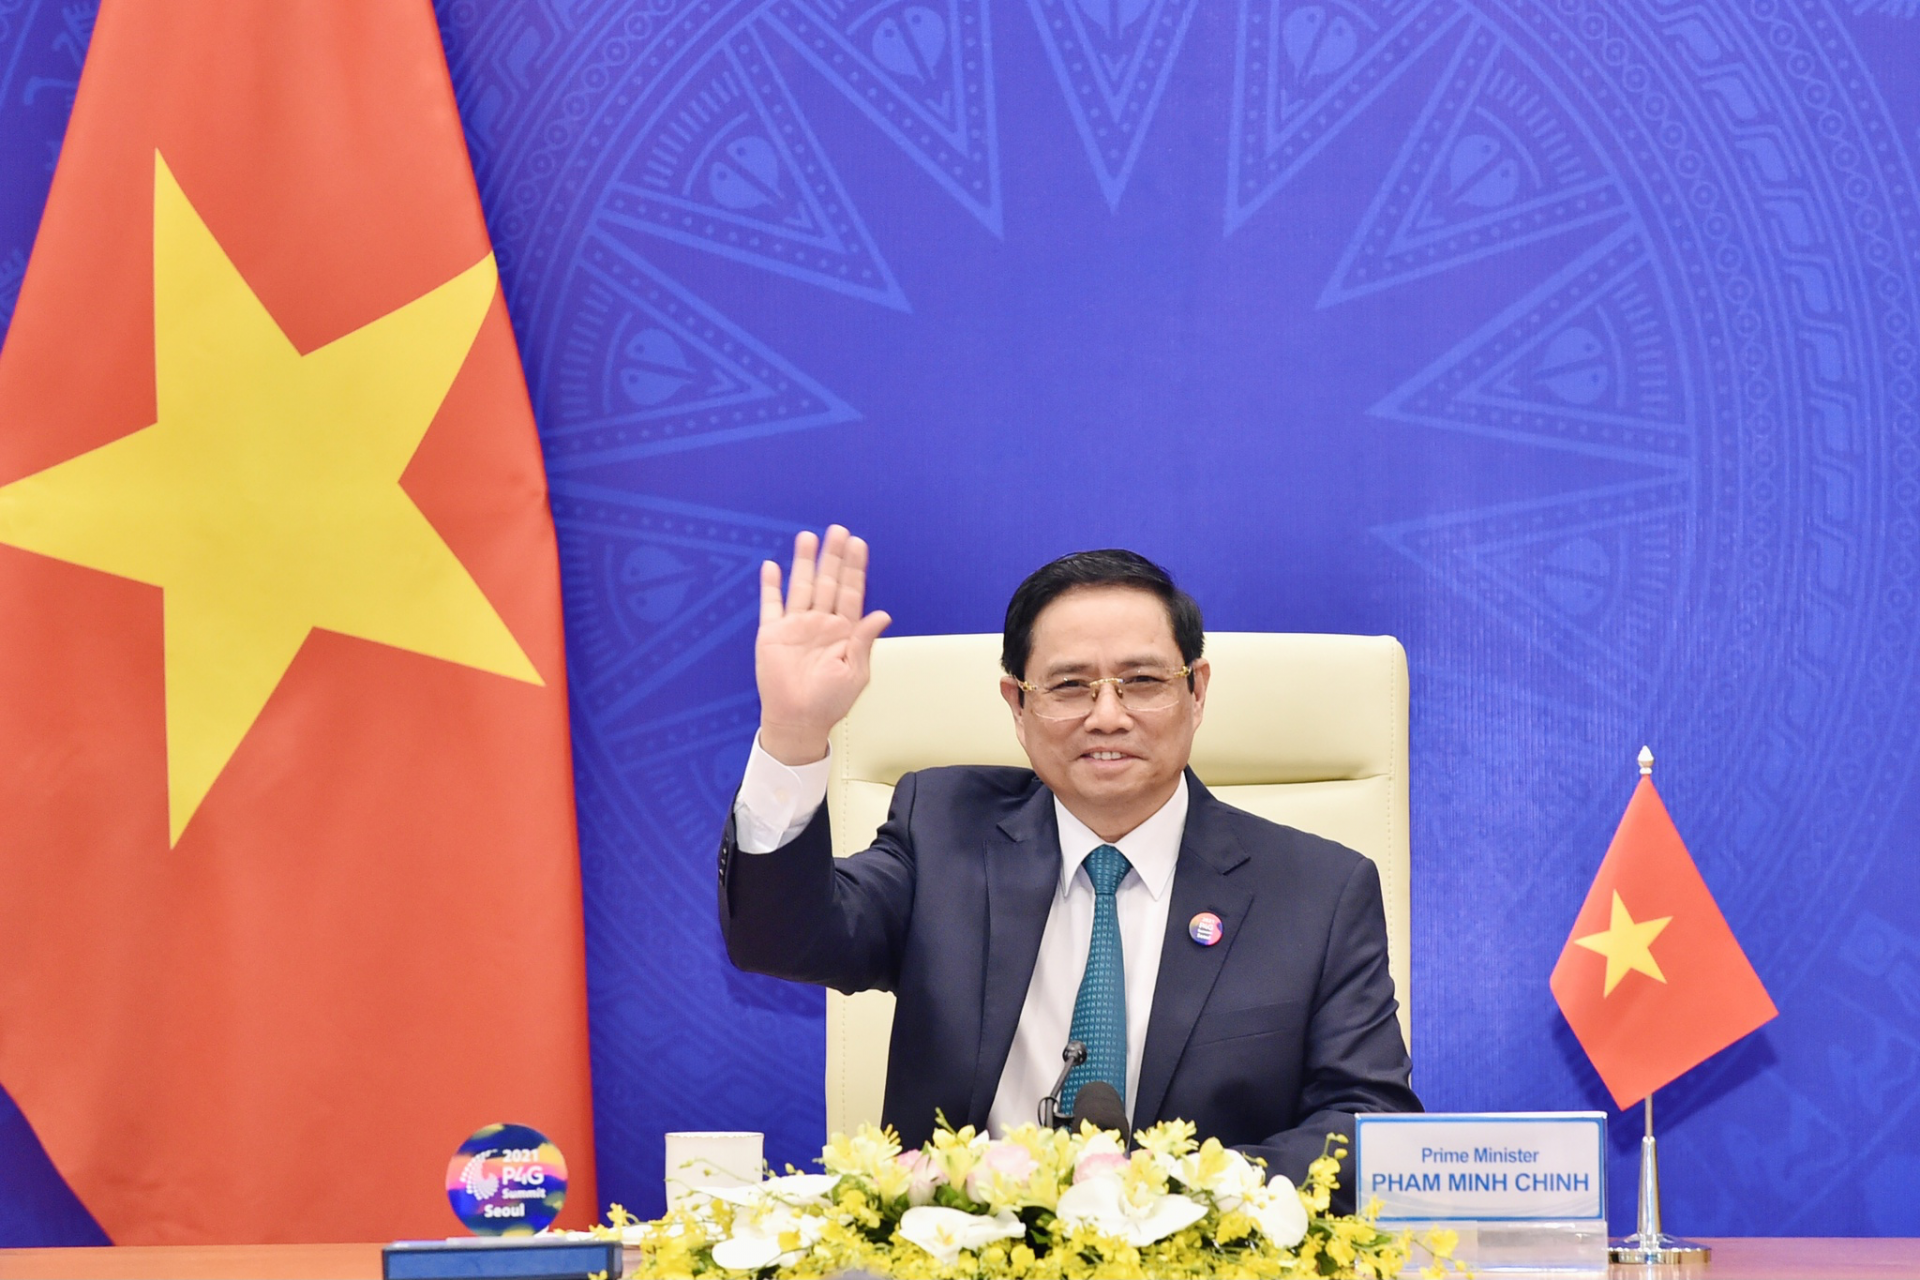 Vietnam News Today (June 1): PM attends Green Growth and Global Goals 2030 Summit